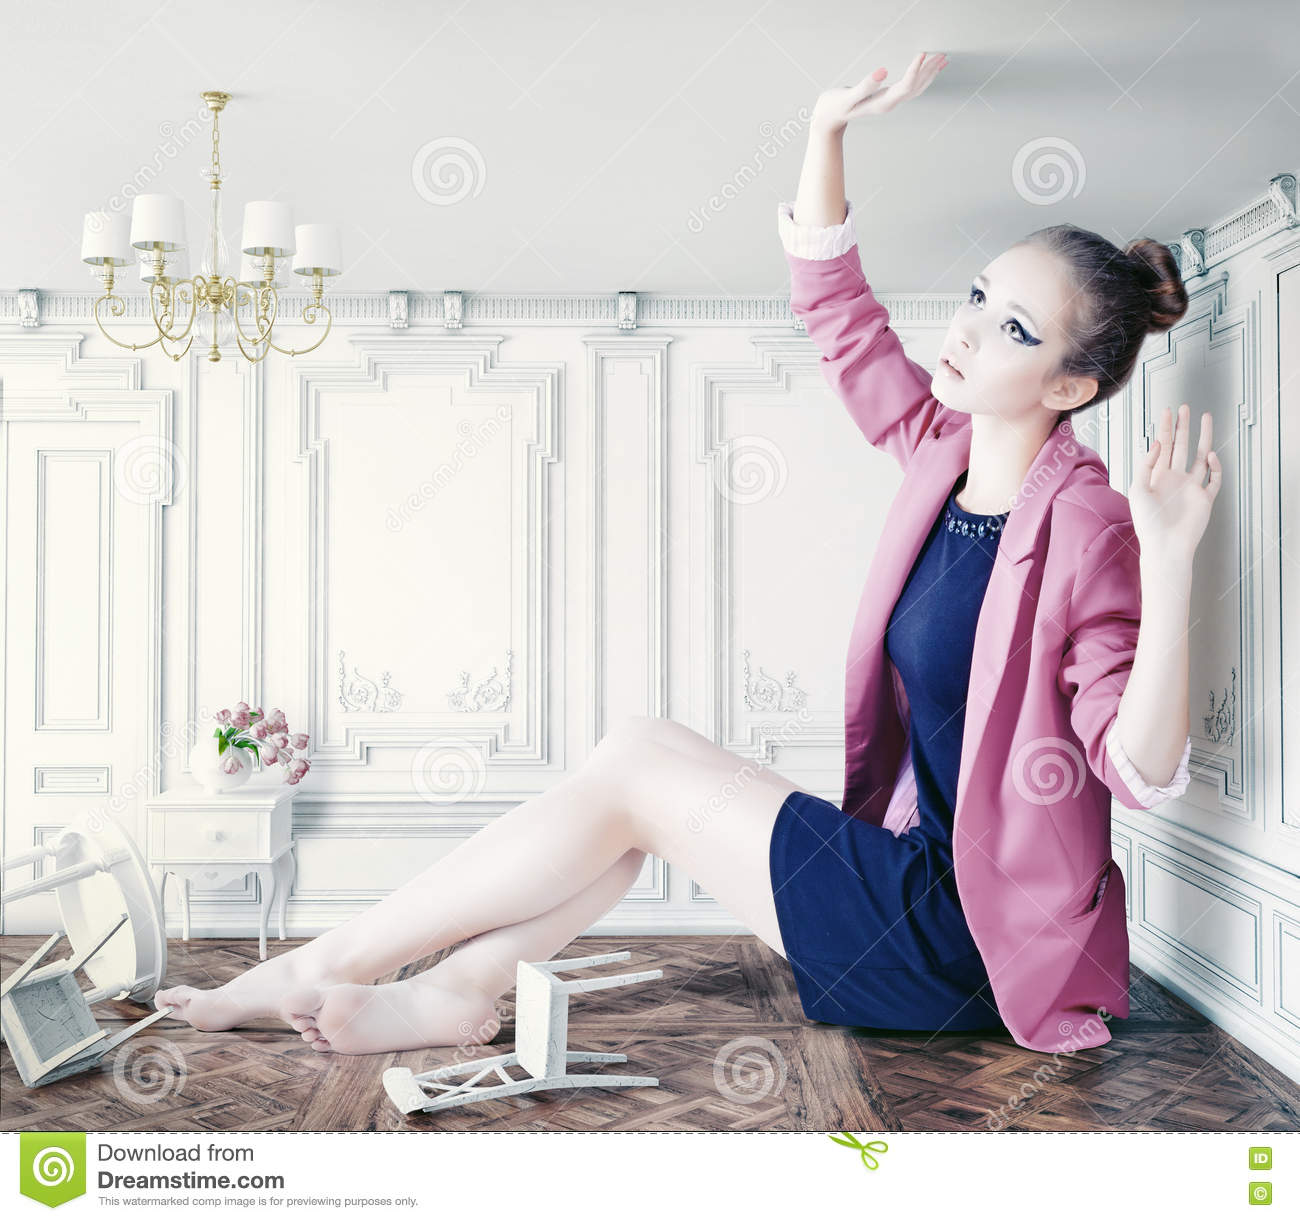 Download Big girl in little room stock photo. Image of fable, girl - 34995230